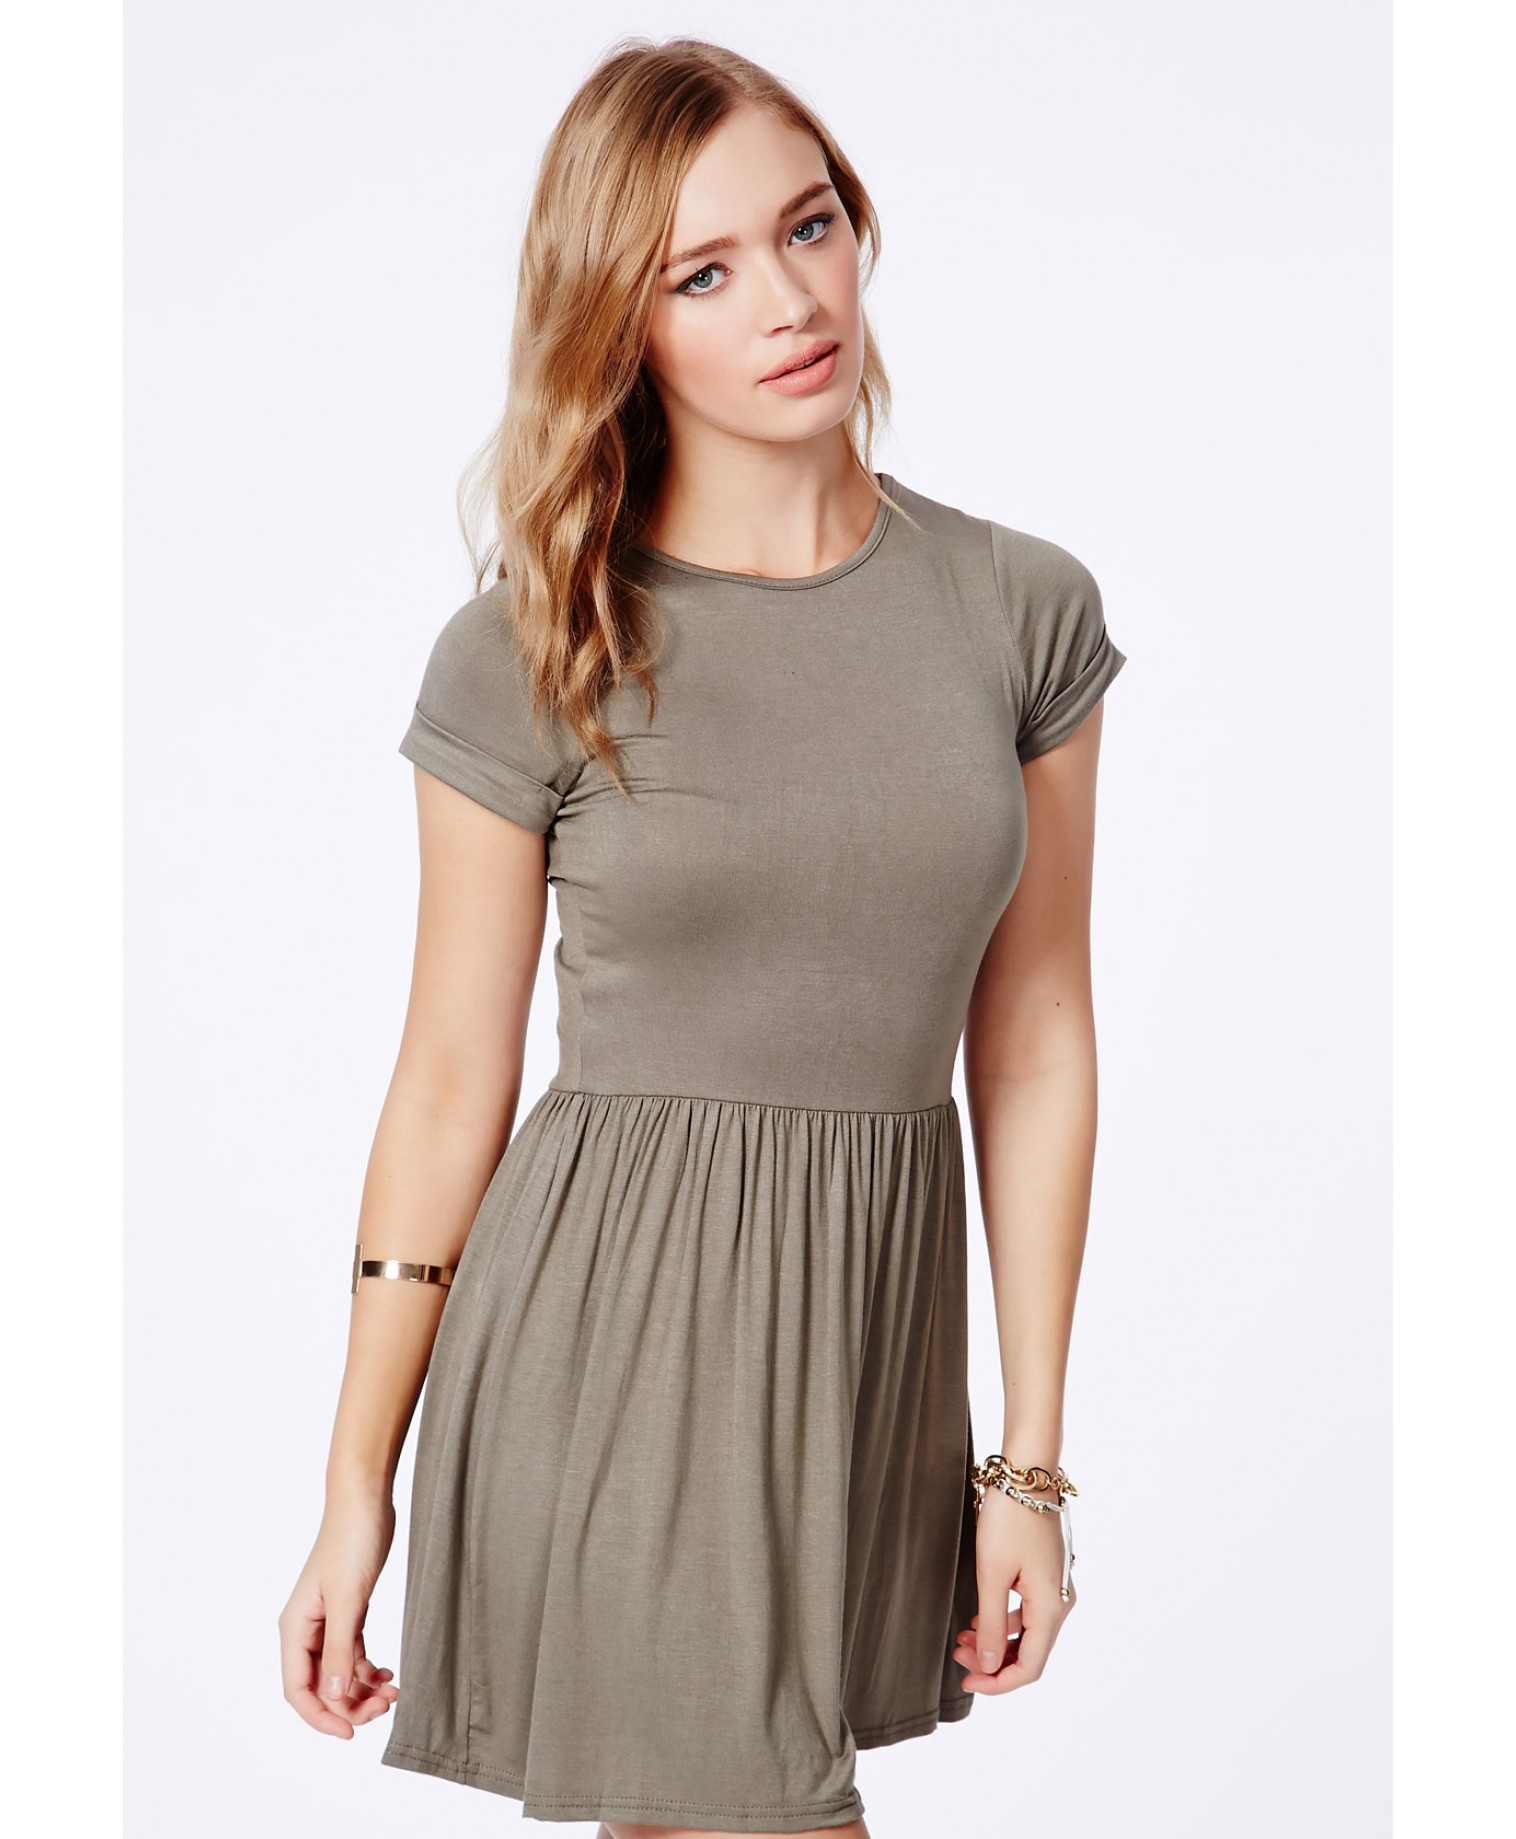 100% high quality 8379b 511ee Missguided Aliveta Value Tshirt Skater Dress  in Khaki in Gre ... 71a9fca7c4ed